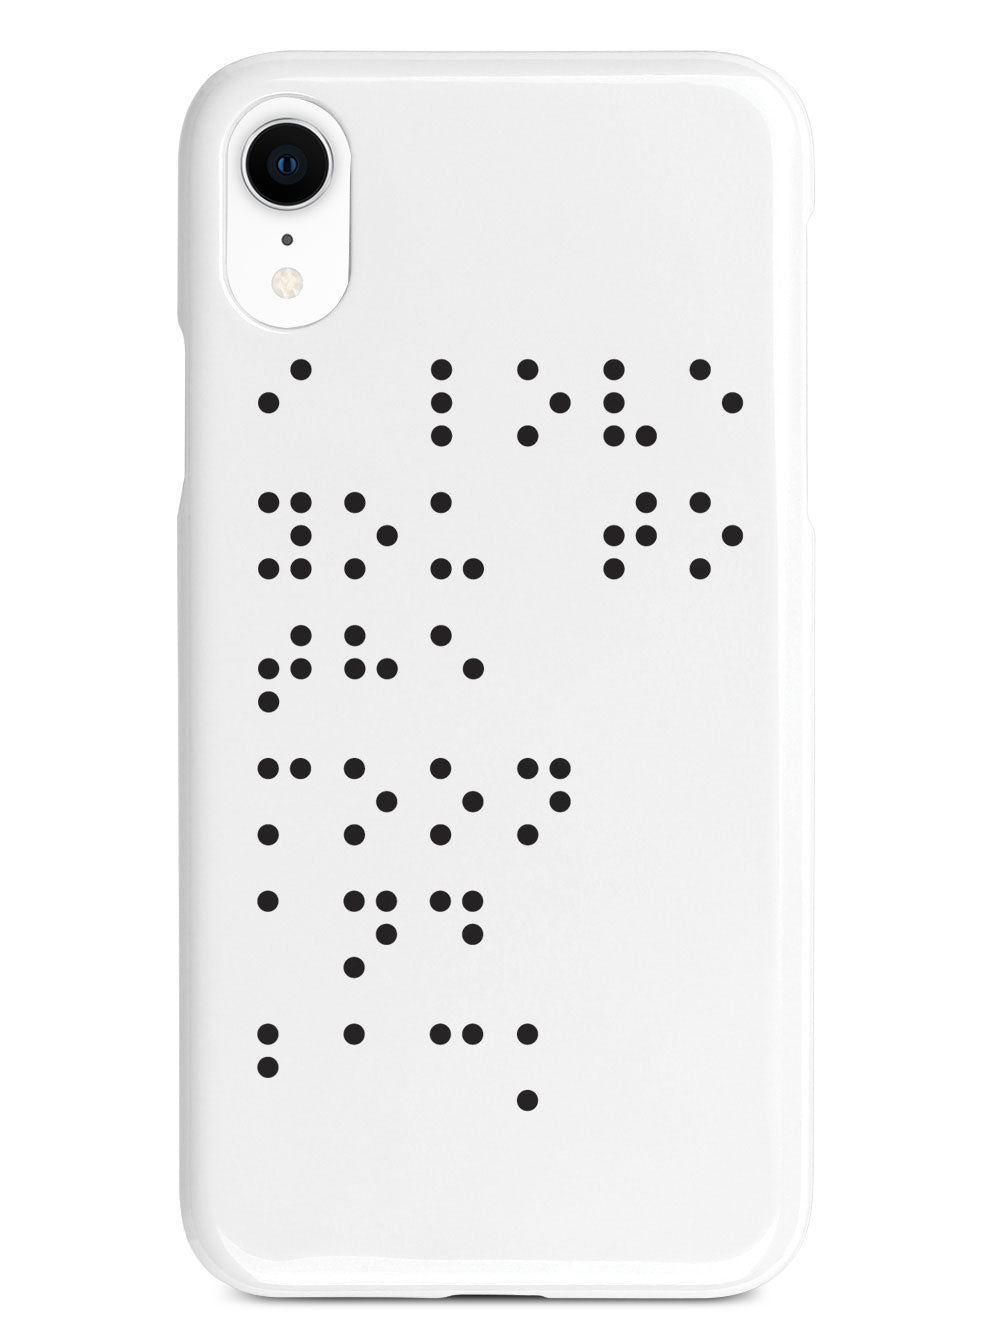 I Love You To The Moon and Back - Braille - White Case